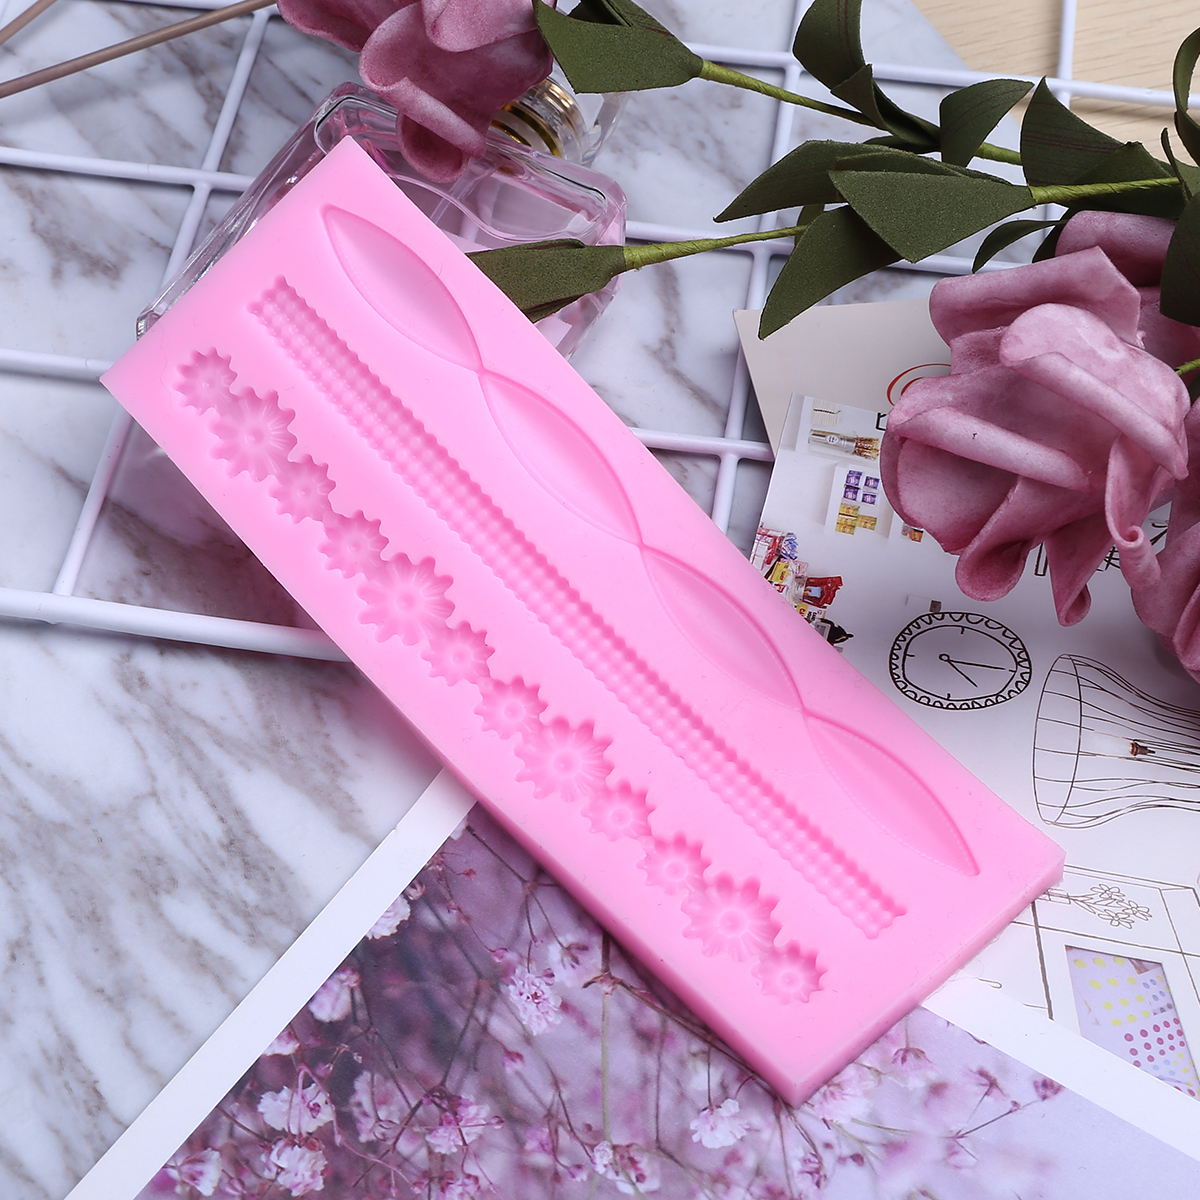 1Pcs DIY Twist Rope Lace Silicone Cake Mold for Cakes Baking Tool Pink